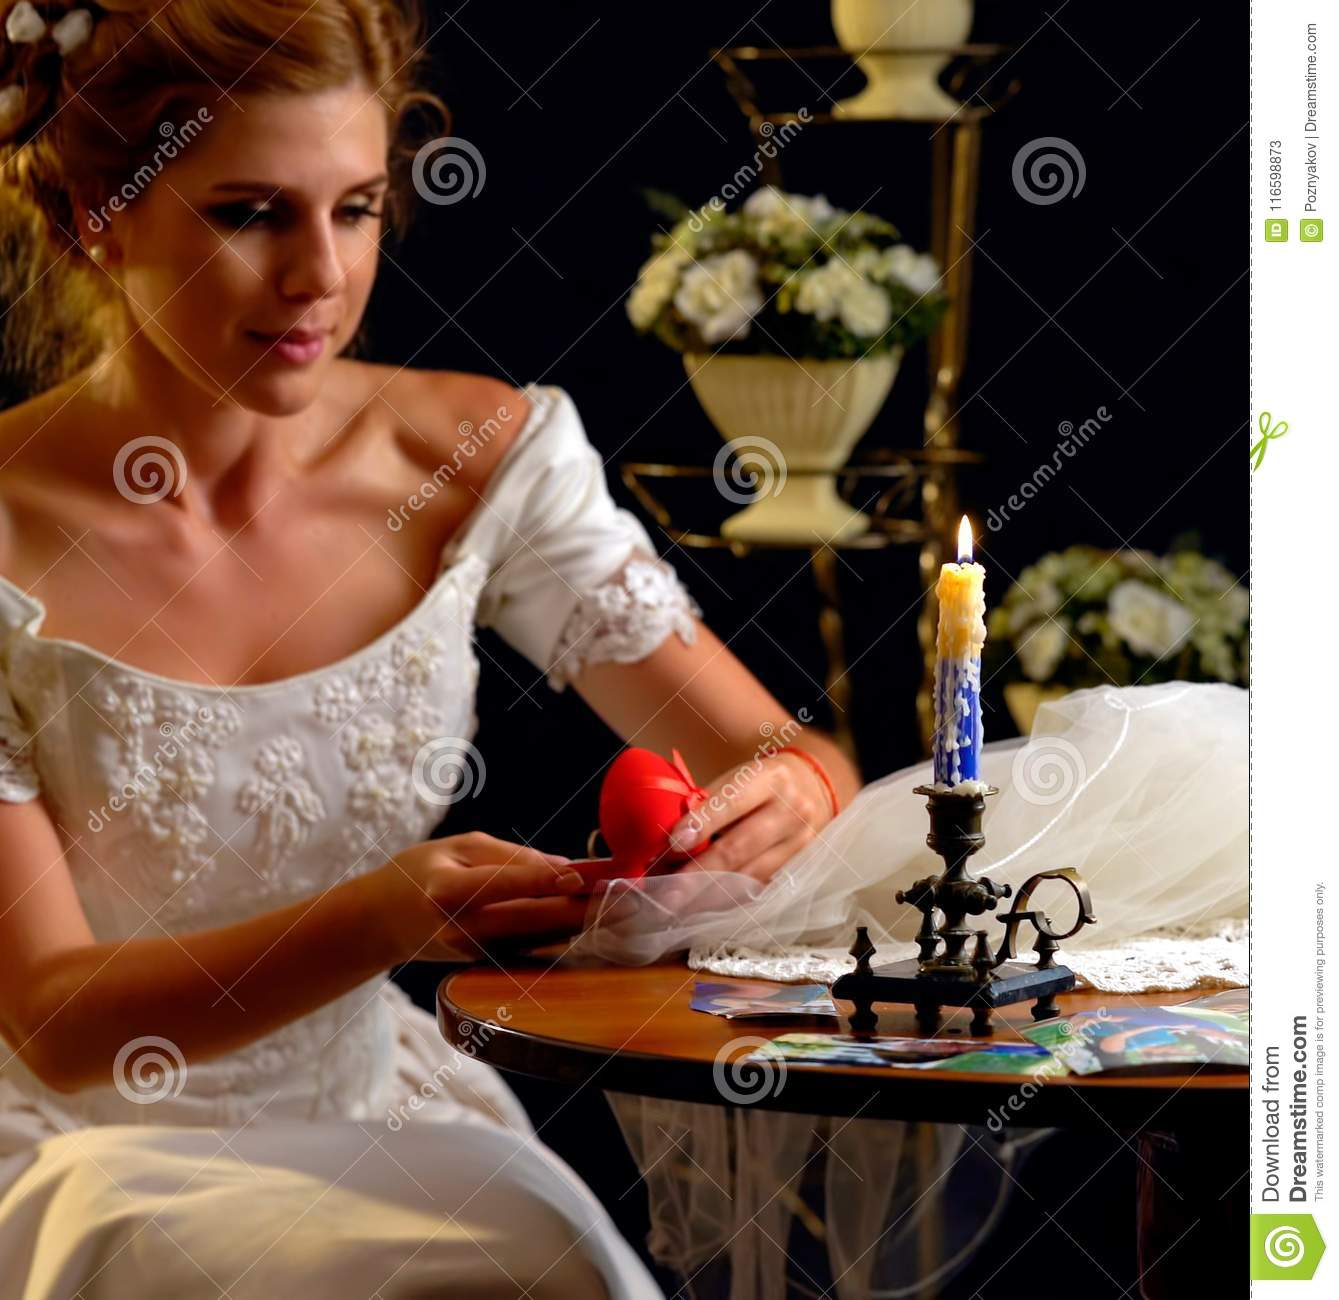 Bride Thinking About Choice Of Groom Woman In Wedding Dress Stock Image Image Of Dress Candle 116598873,Casual Mother Of The Bride Dresses For Beach Wedding